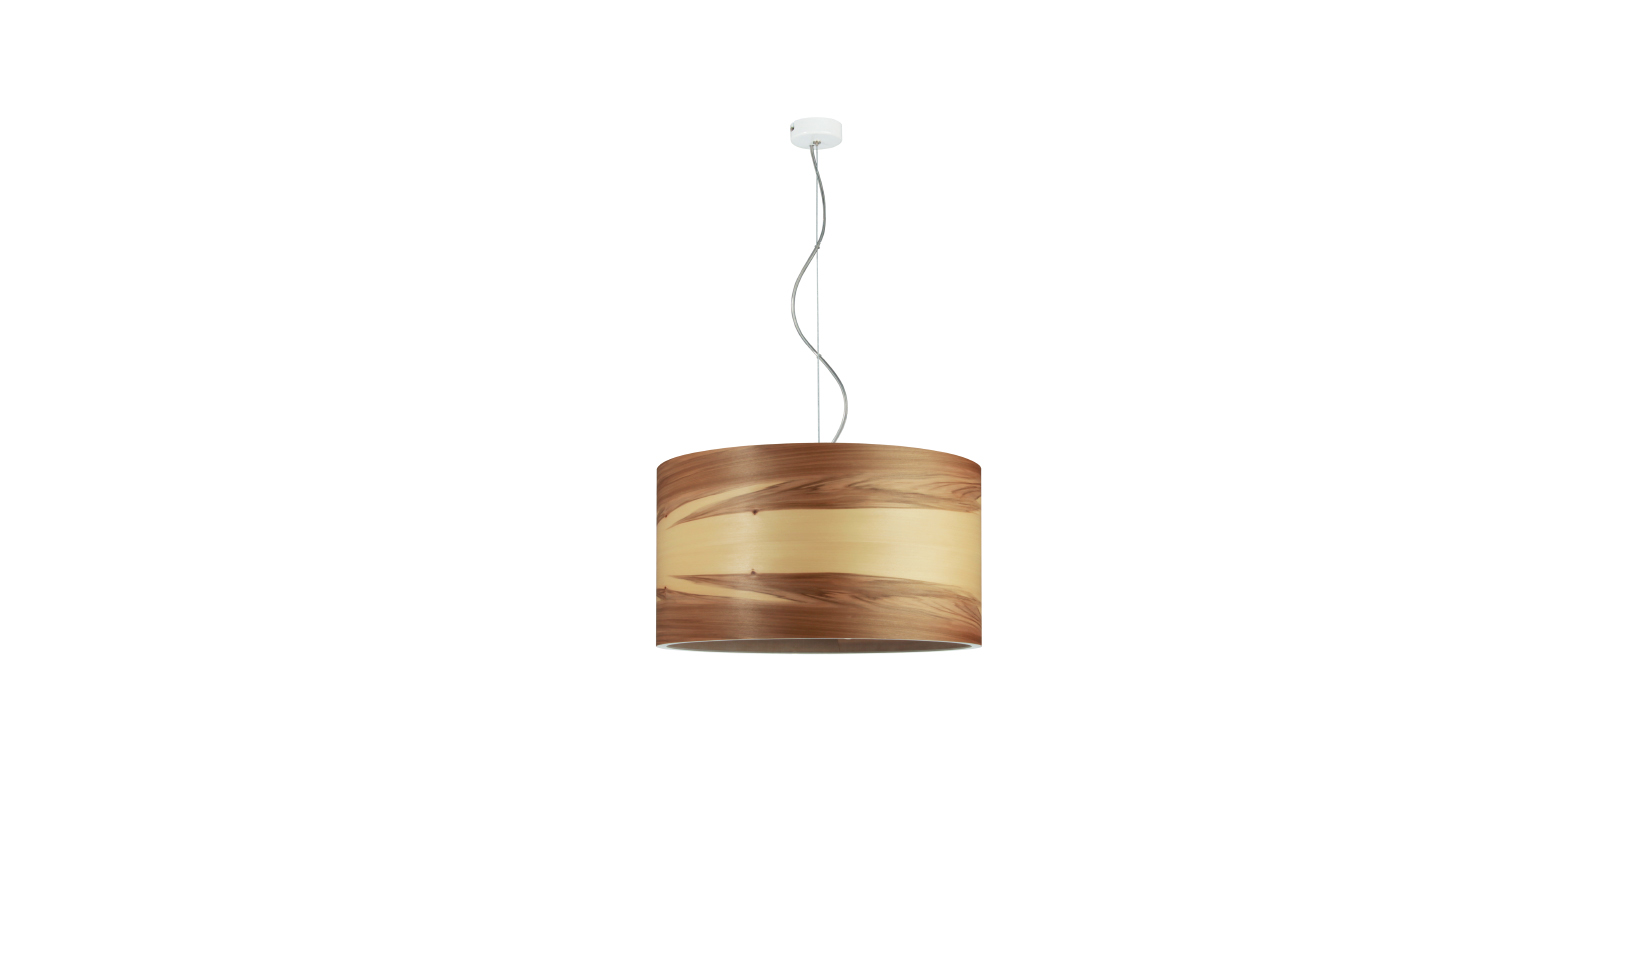 dreizehngrad pendant lamp model Funk 40/22P satin walnut veneer lamp design lamp